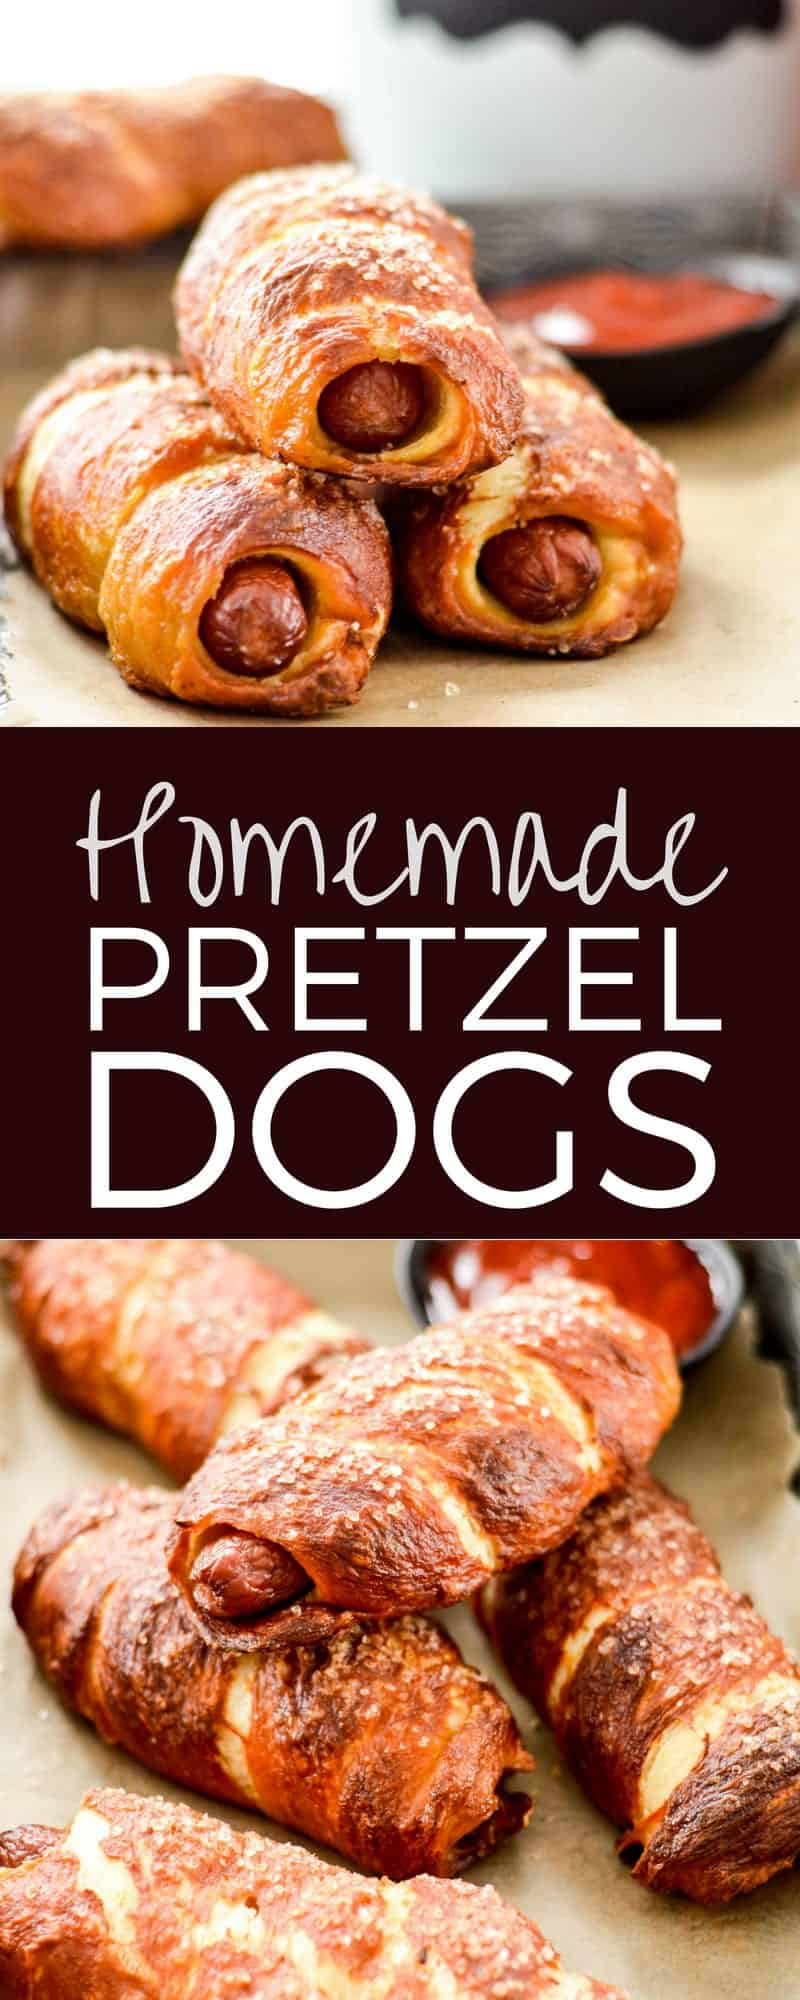 Homemade Pretzel Dogs! A MANtastic recipe for all your sports watching needs! A from-scratch dough is wrapped around high-quality hot dogs making these a much better choice than store bought varieties! Plus they're out of this world delicious and freezer friendly! #homemade #prezteldog #gameday #recipe #fromscratch